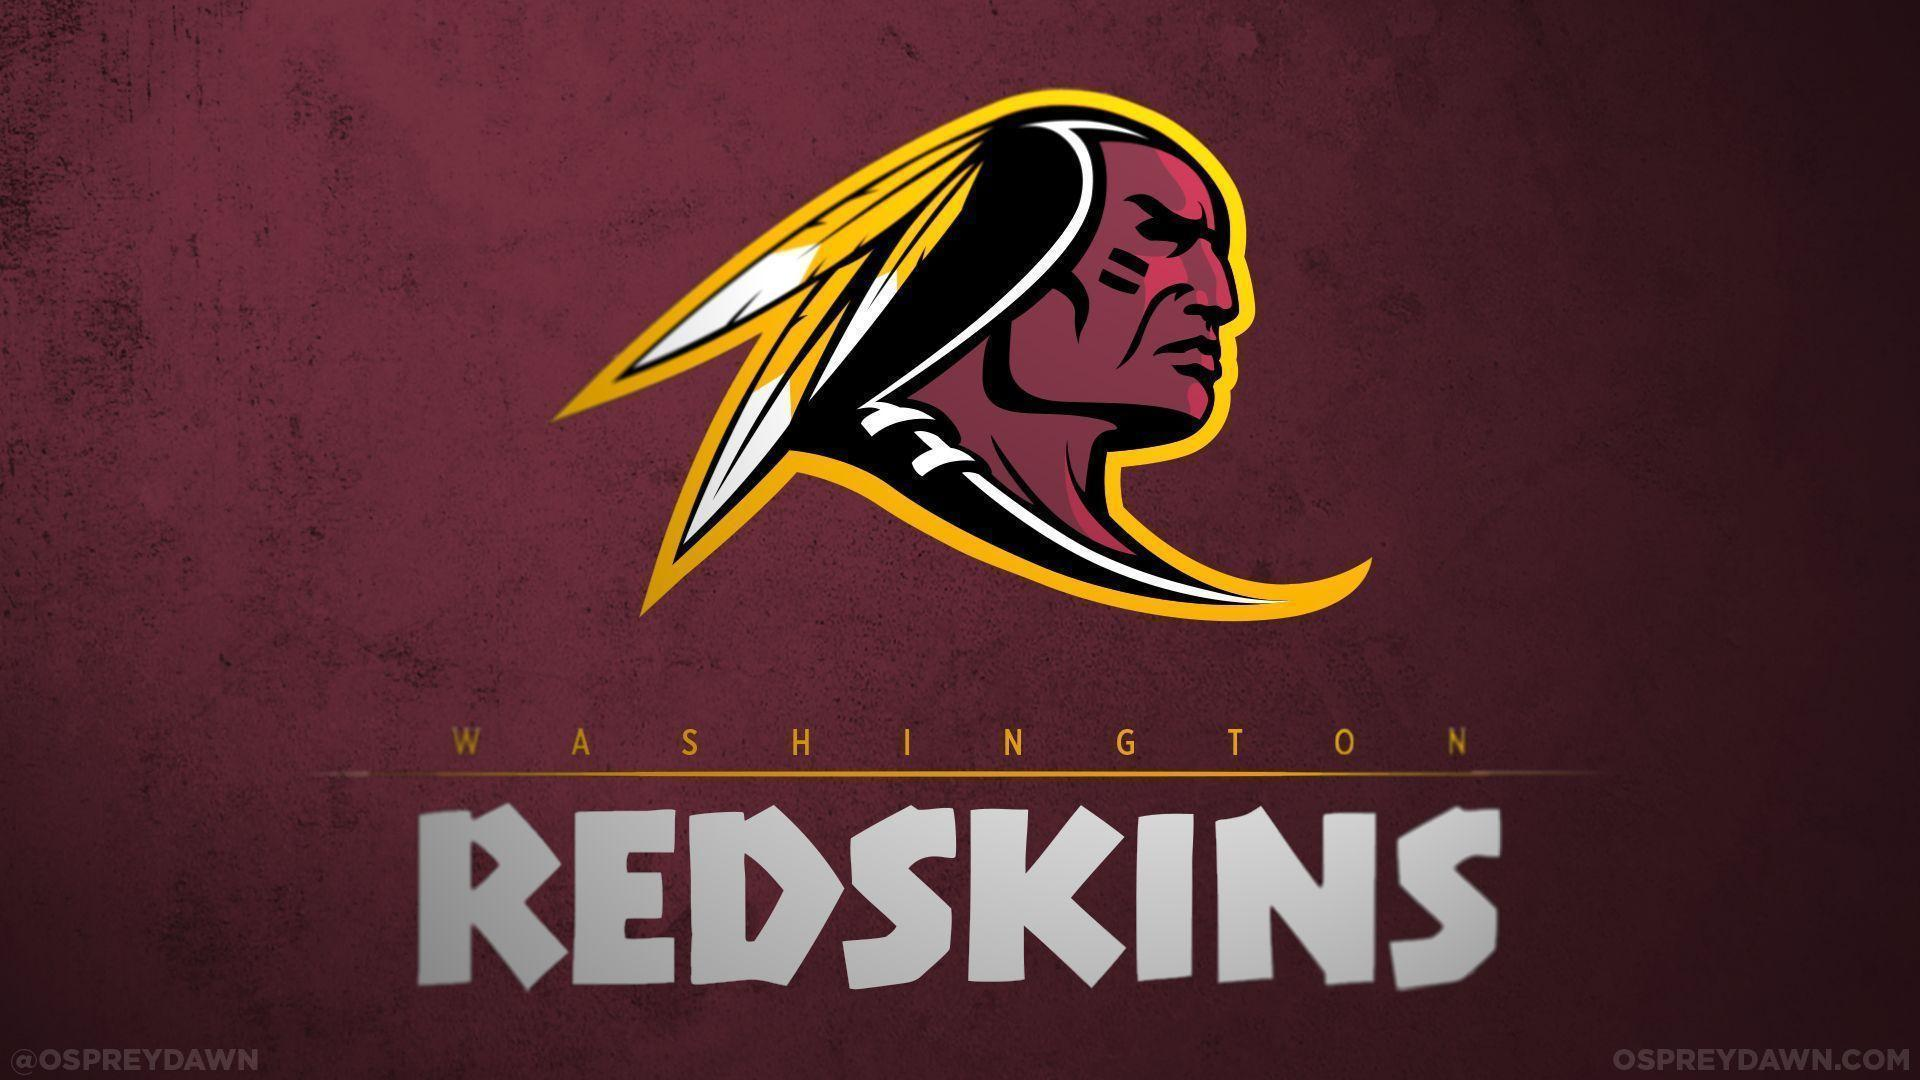 WASHINGTON REDSKINS nfl football f wallpapers